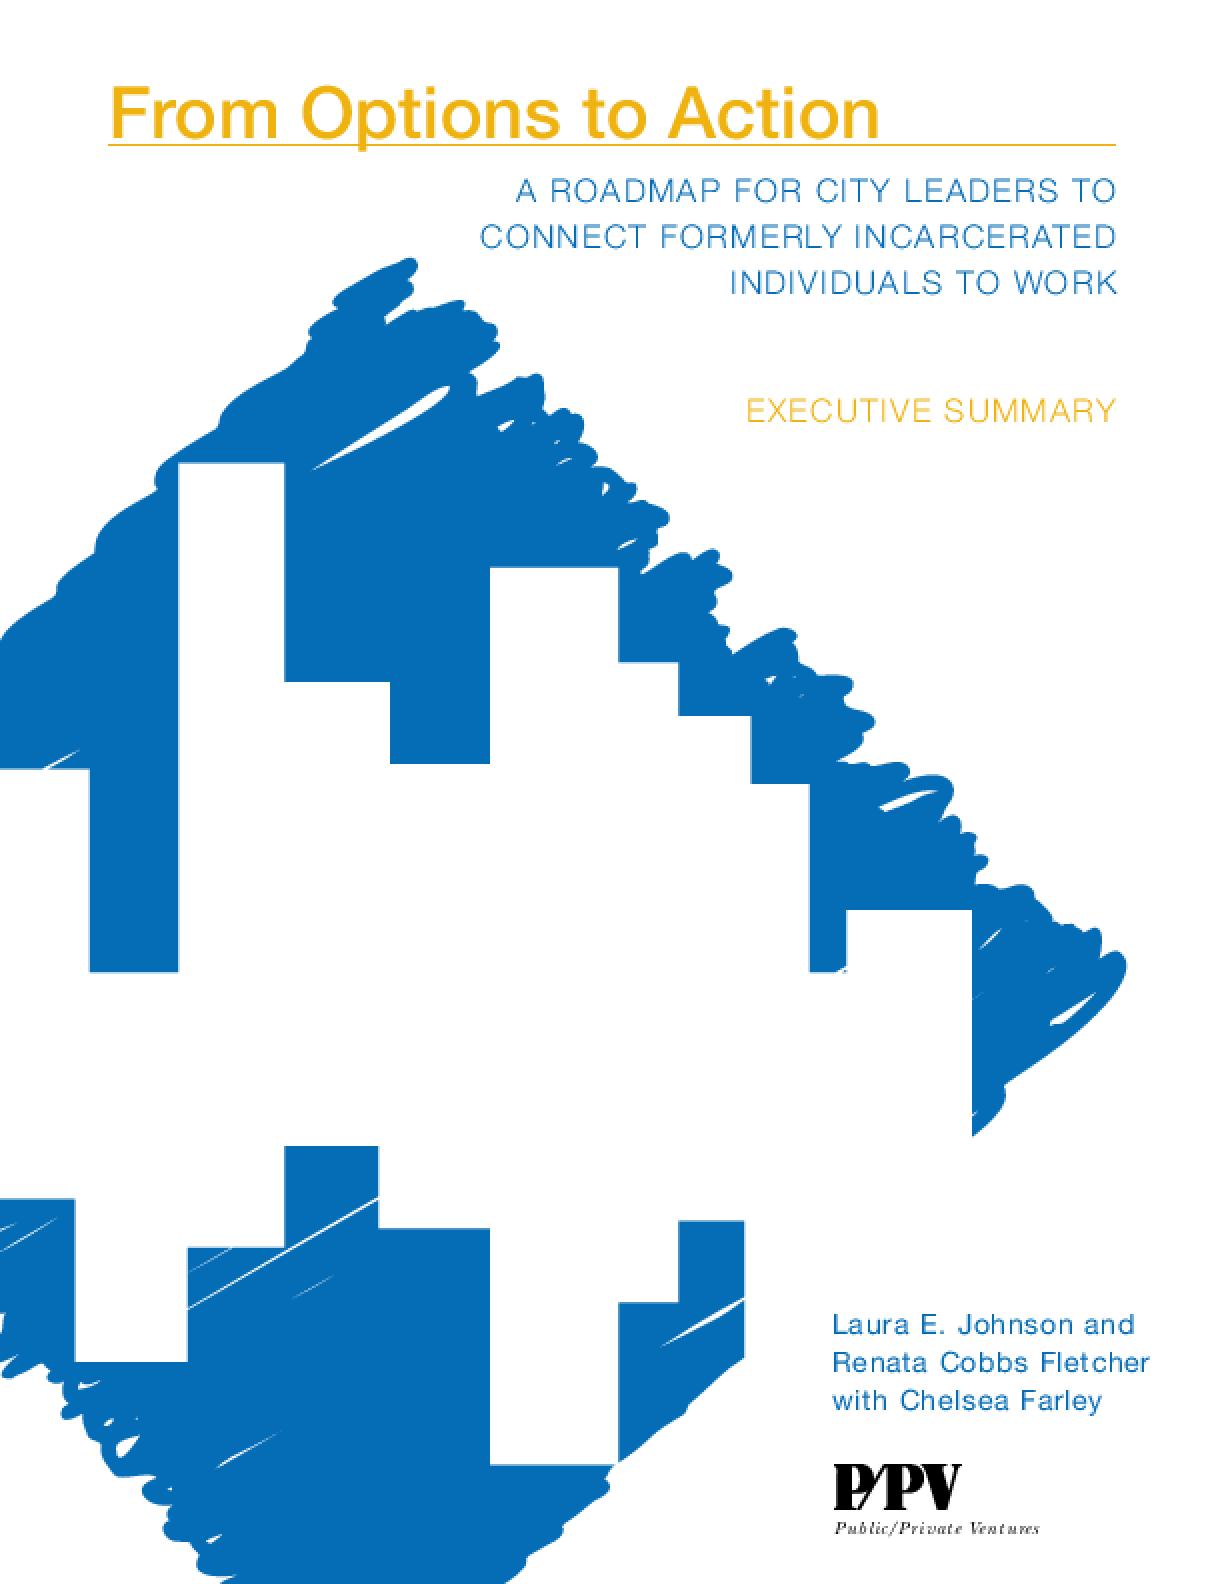 From Options to Action: A Roadmap for City Leaders to Connect Formerly Incarcerated Individuals to Work Executive Summary